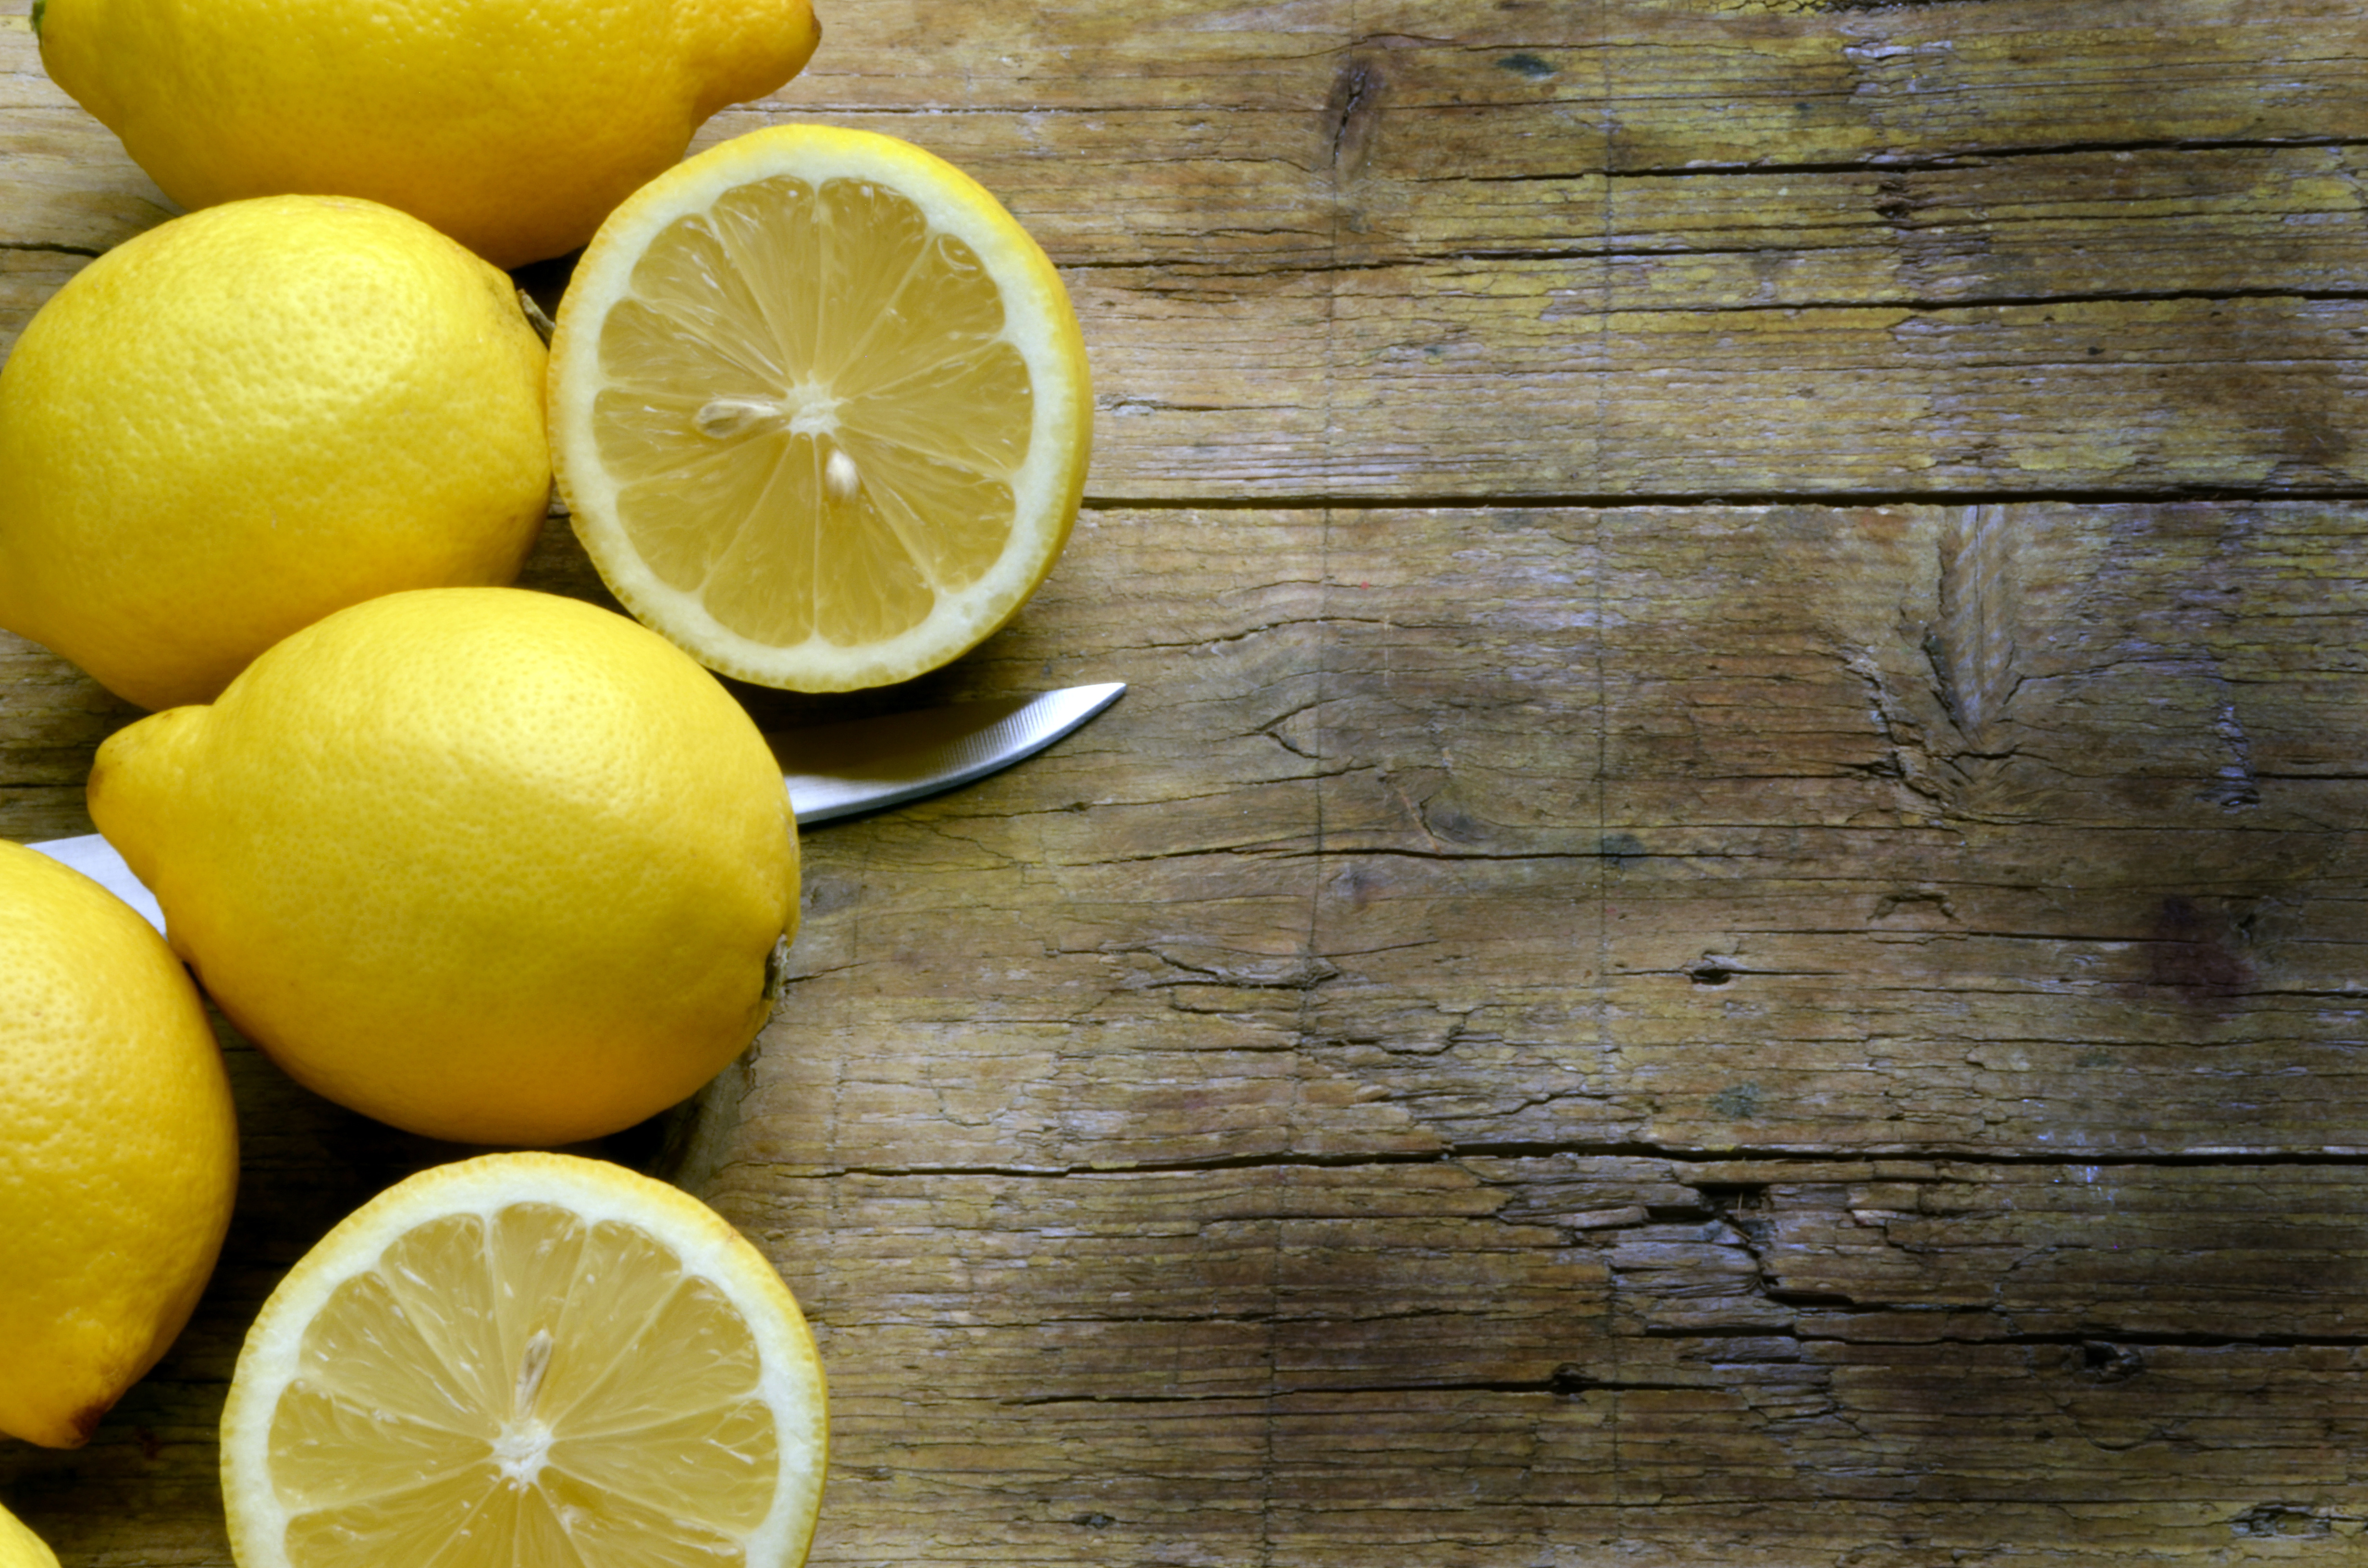 eat your citrus - health benefits - bioflavonoids - citrus - lemons - eat well - health - immune system - vitamin c